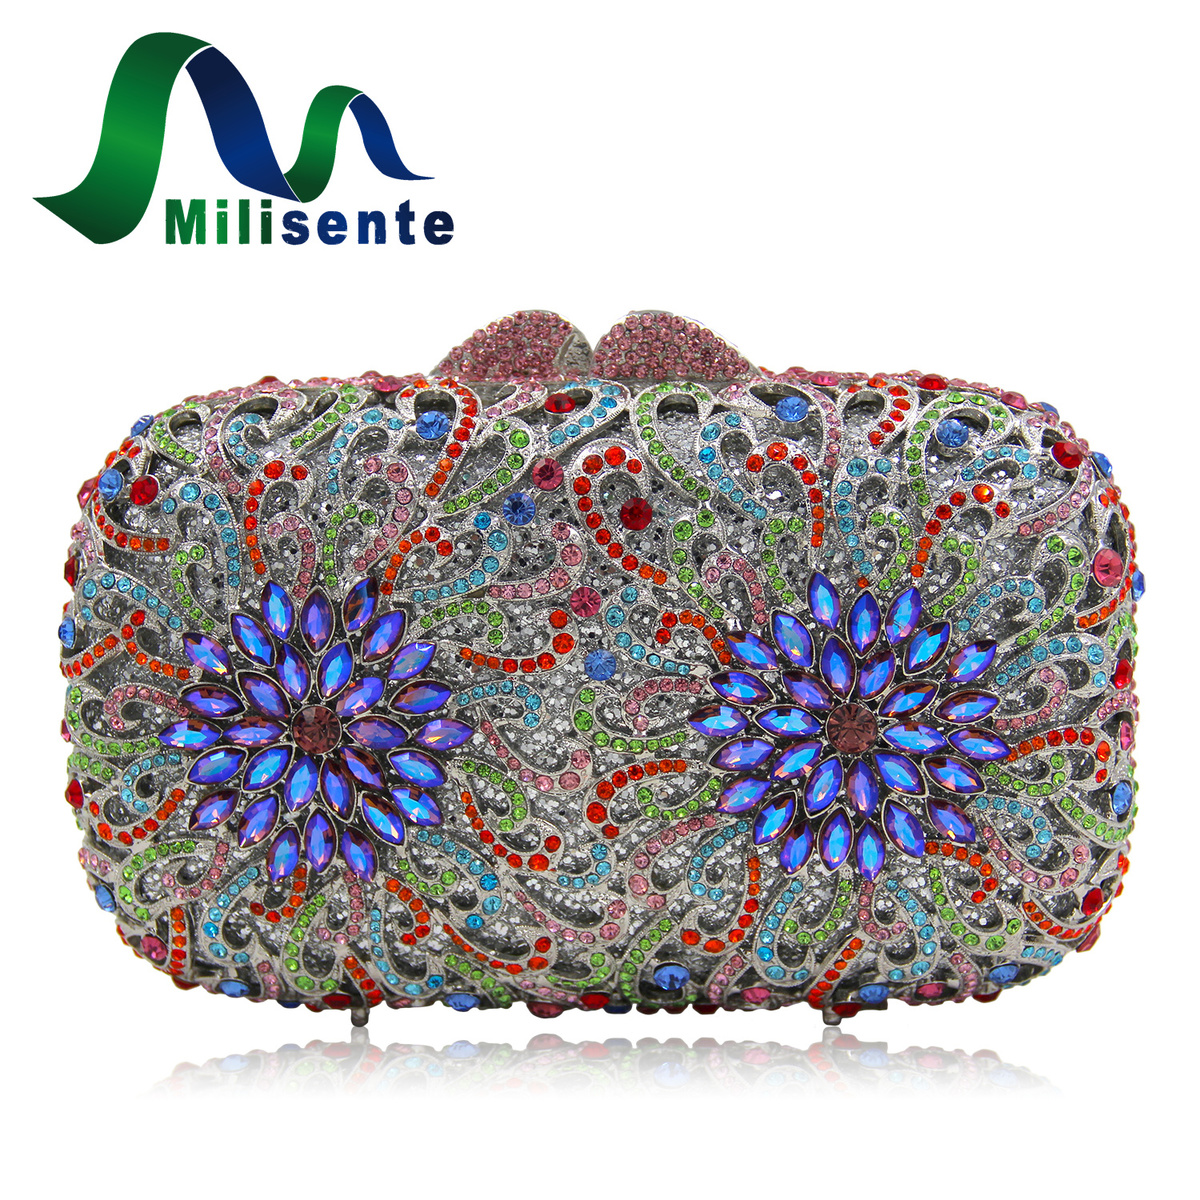 Milisente Multicolored Women Fashion Crystal Clutch Evening Purse Handbag Bridal Shoulder Bag With Floral Pattern купить